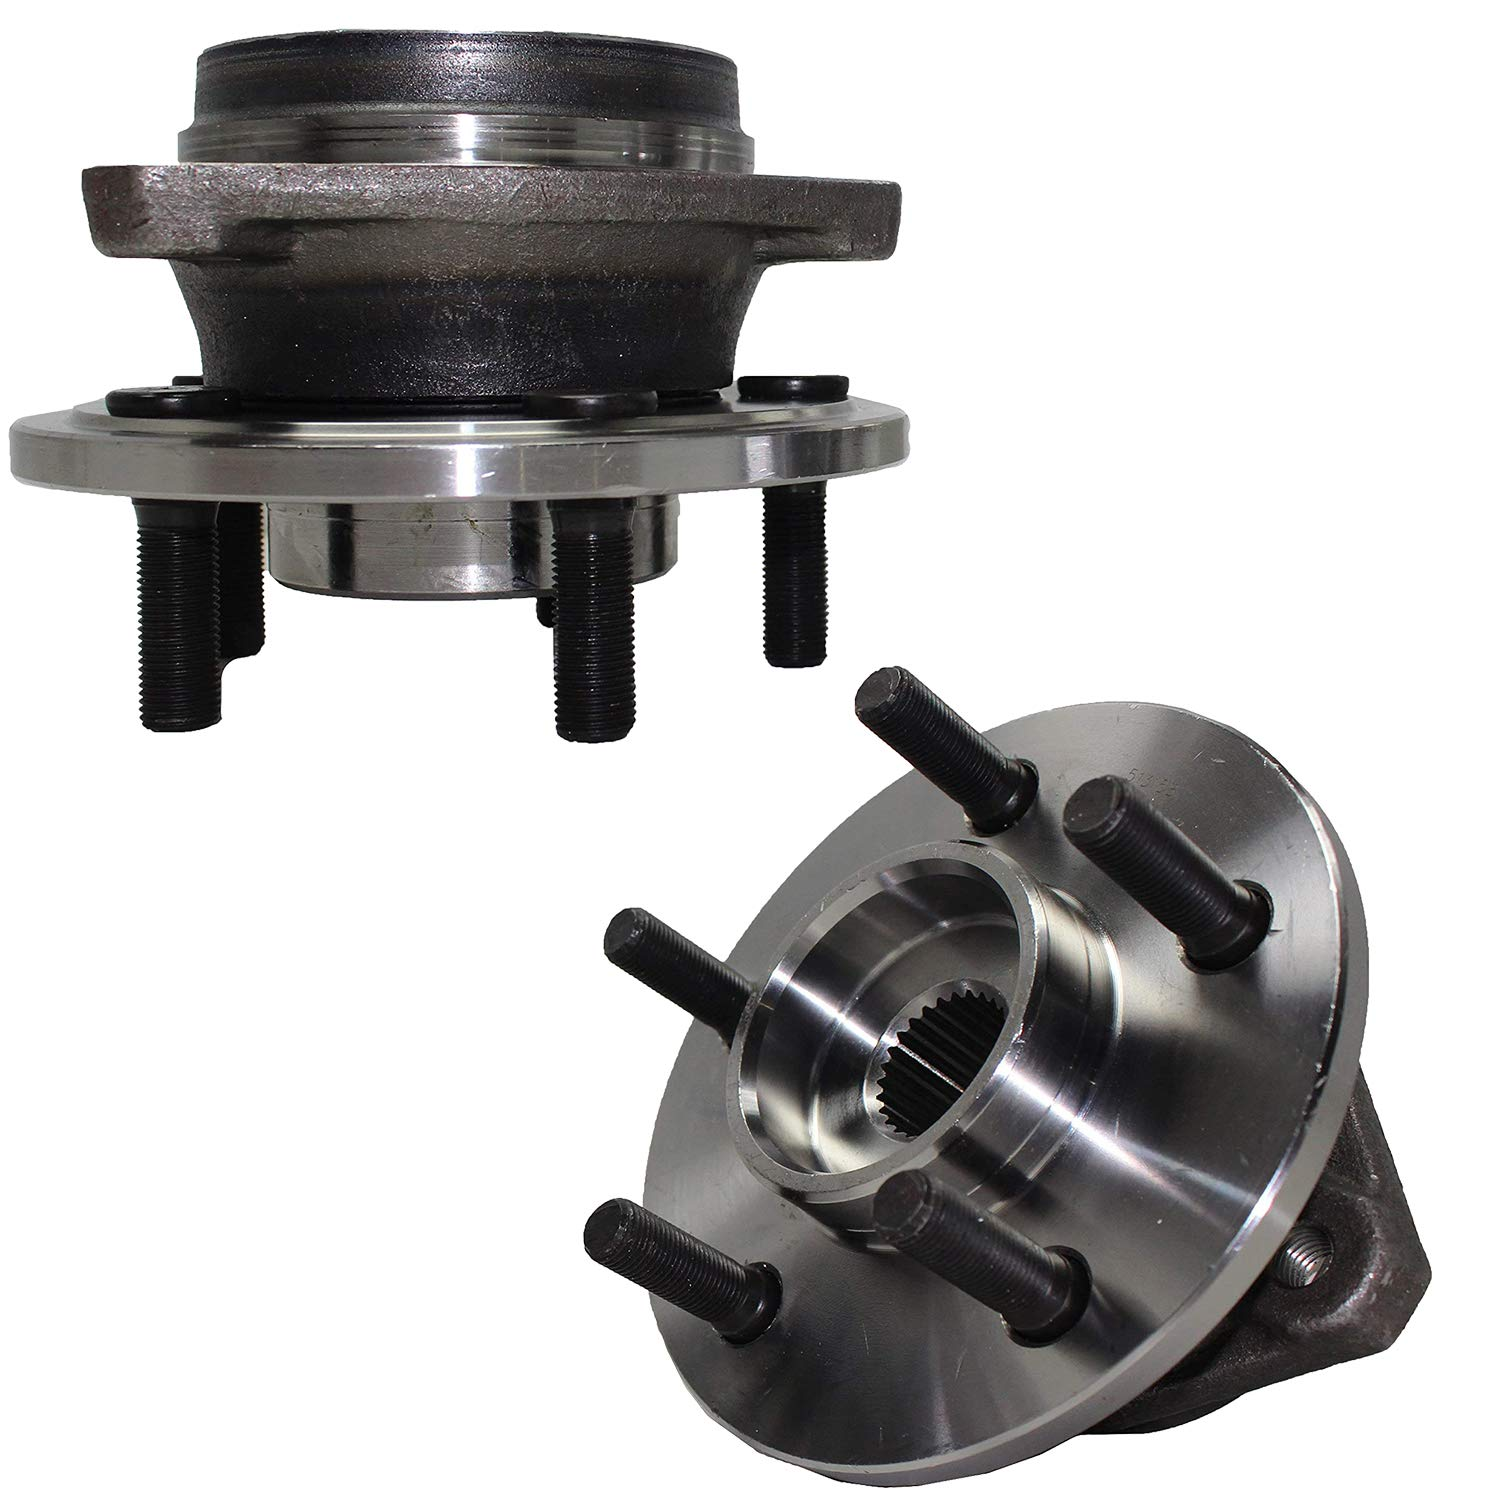 Detroit Axle - Front Wheel Hub and Bearing Assembly Replacement For Jeep Wrangler TJ Cherokee - 2pc Set